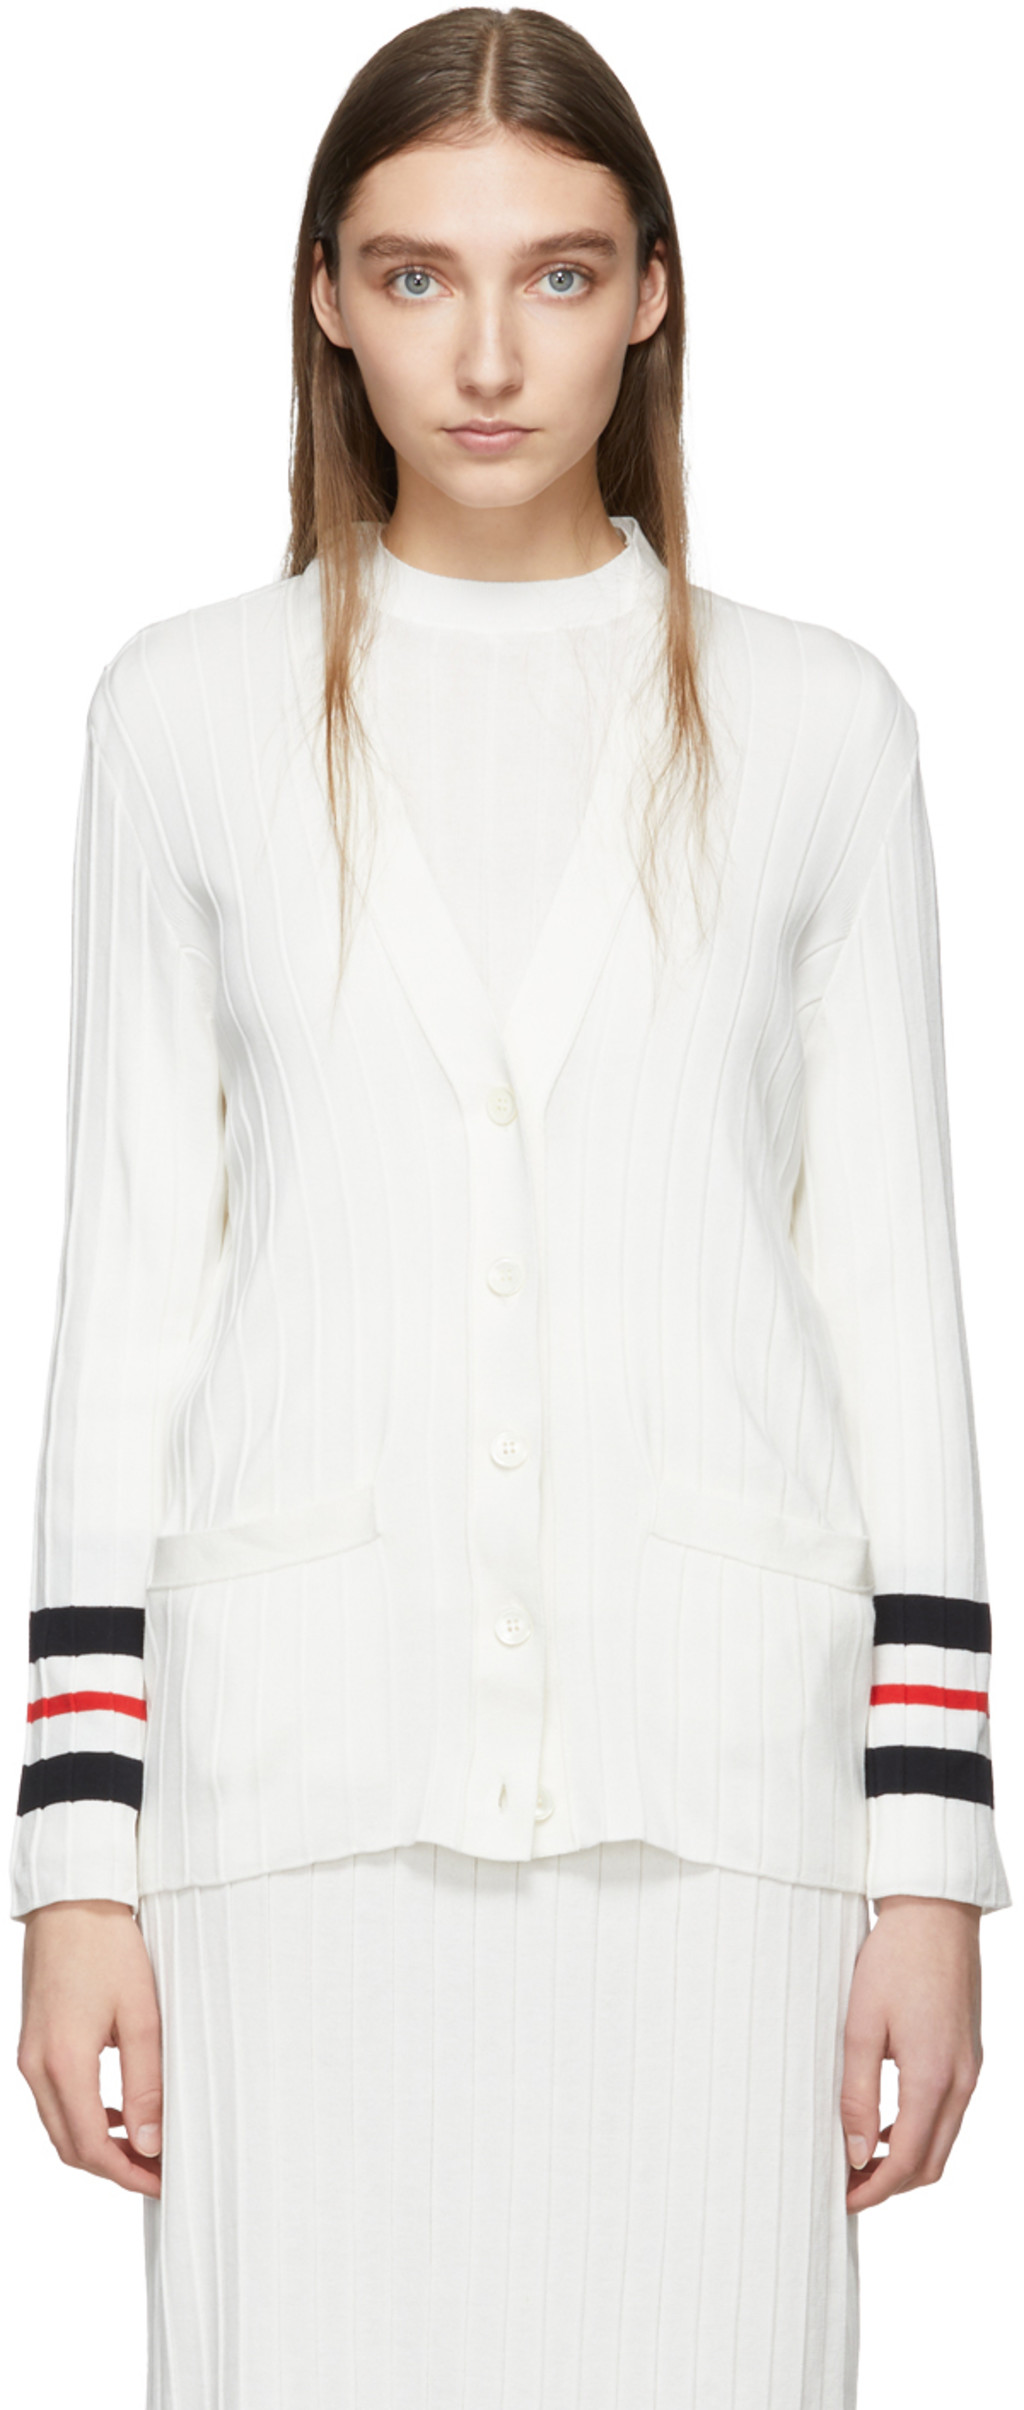 90e86ac1aafe Thom Browne clothing for Women